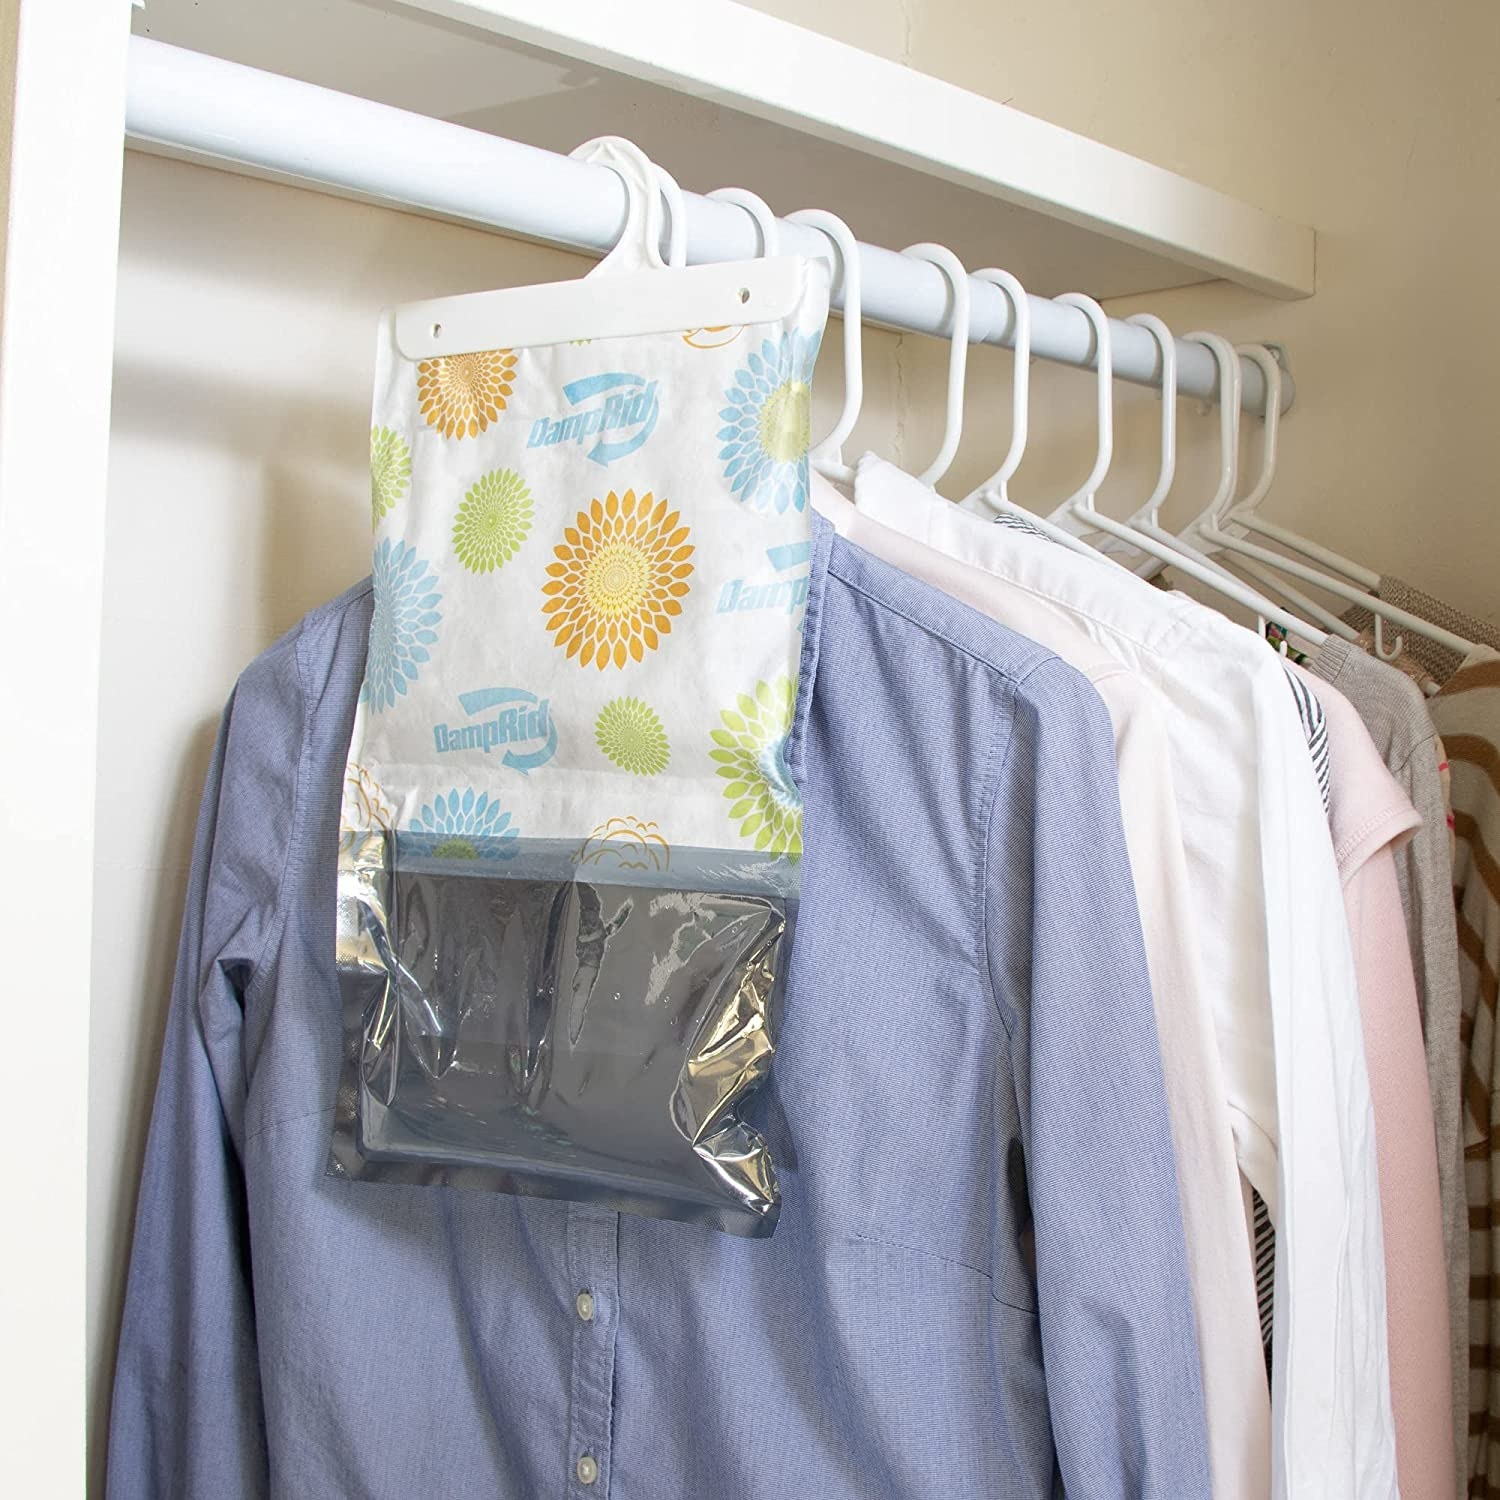 the bag hanging on a clothes rack in a closet